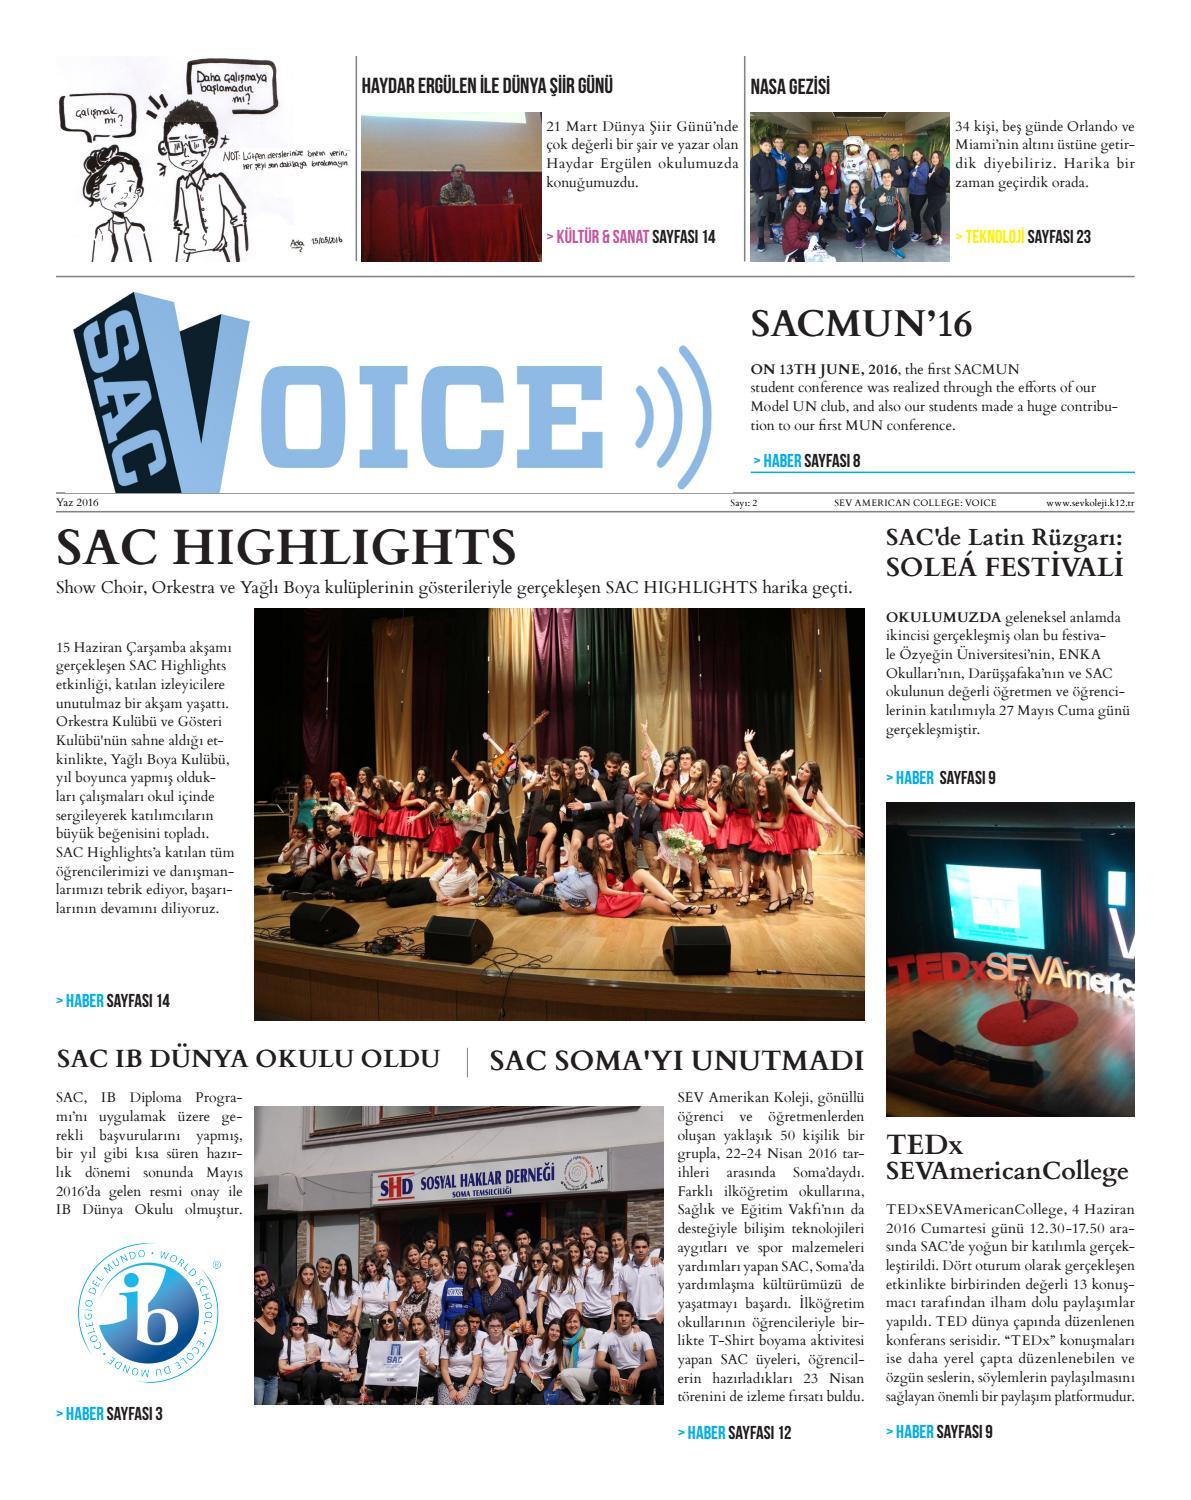 Sac Voice 2016 2 By Sev American College Issuu